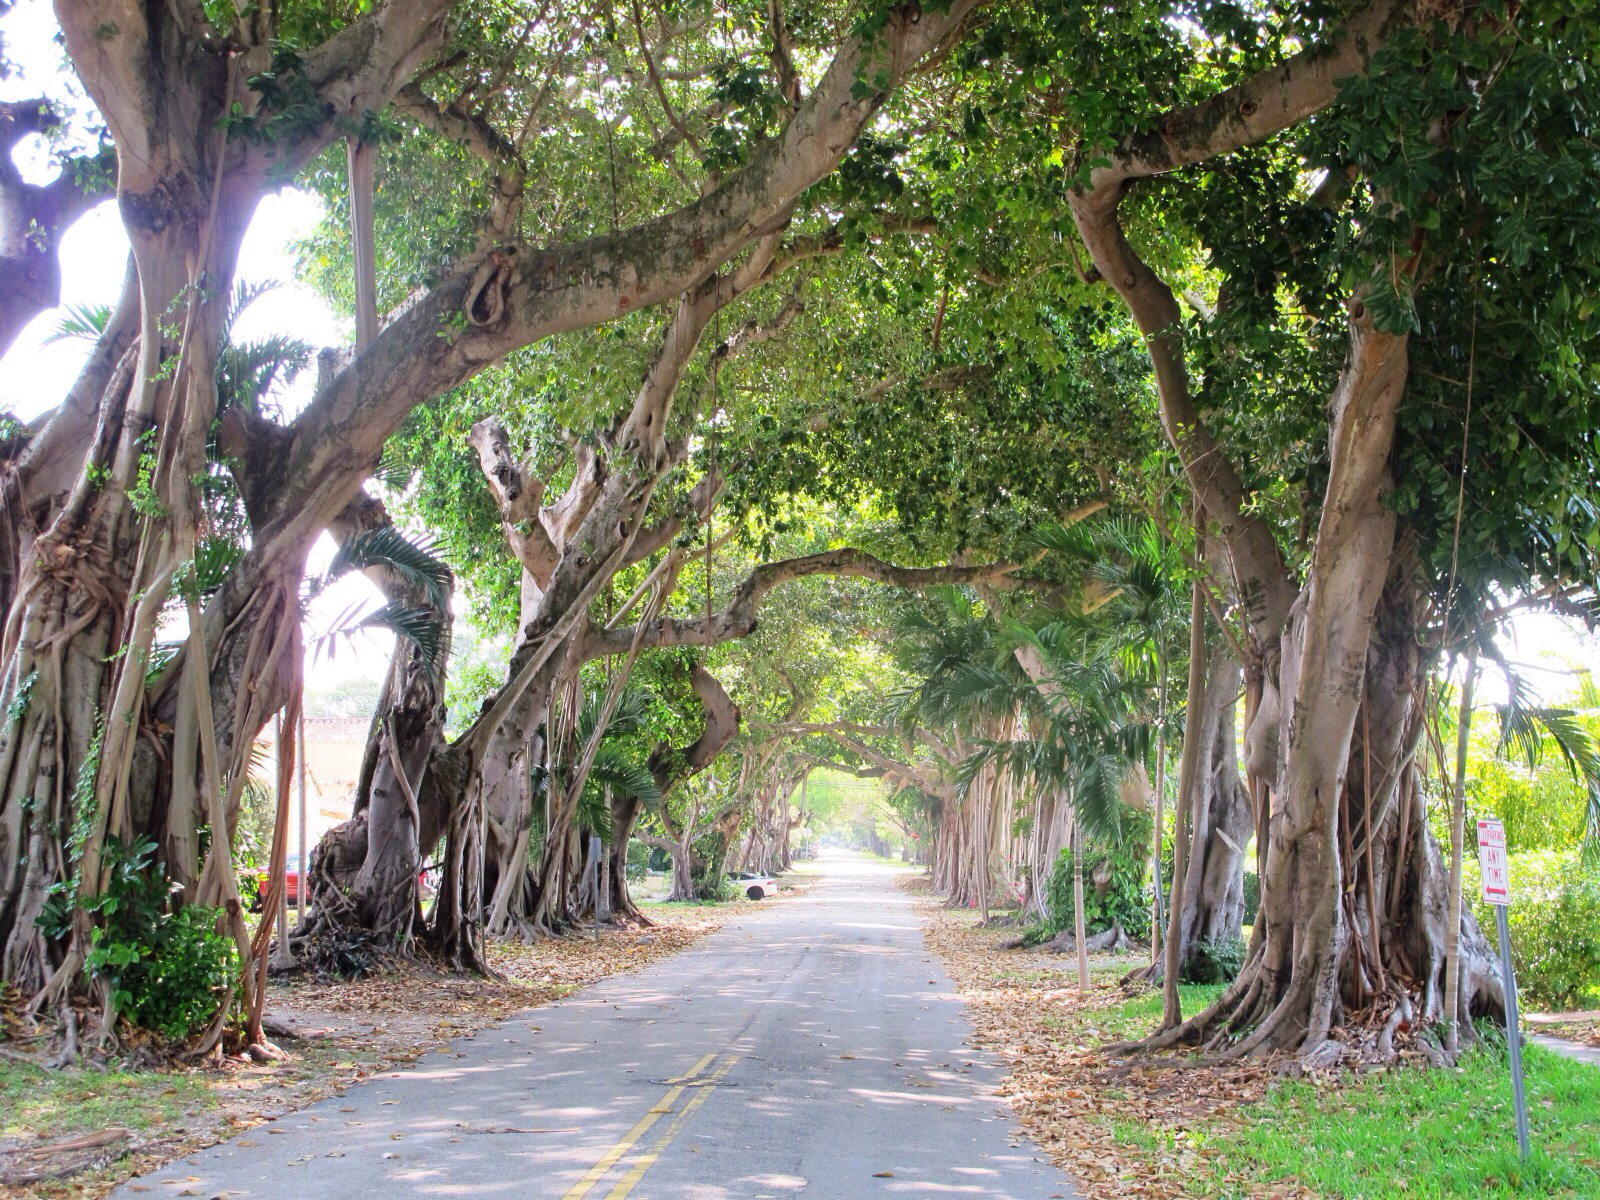 A street in Coral Gables, Florida